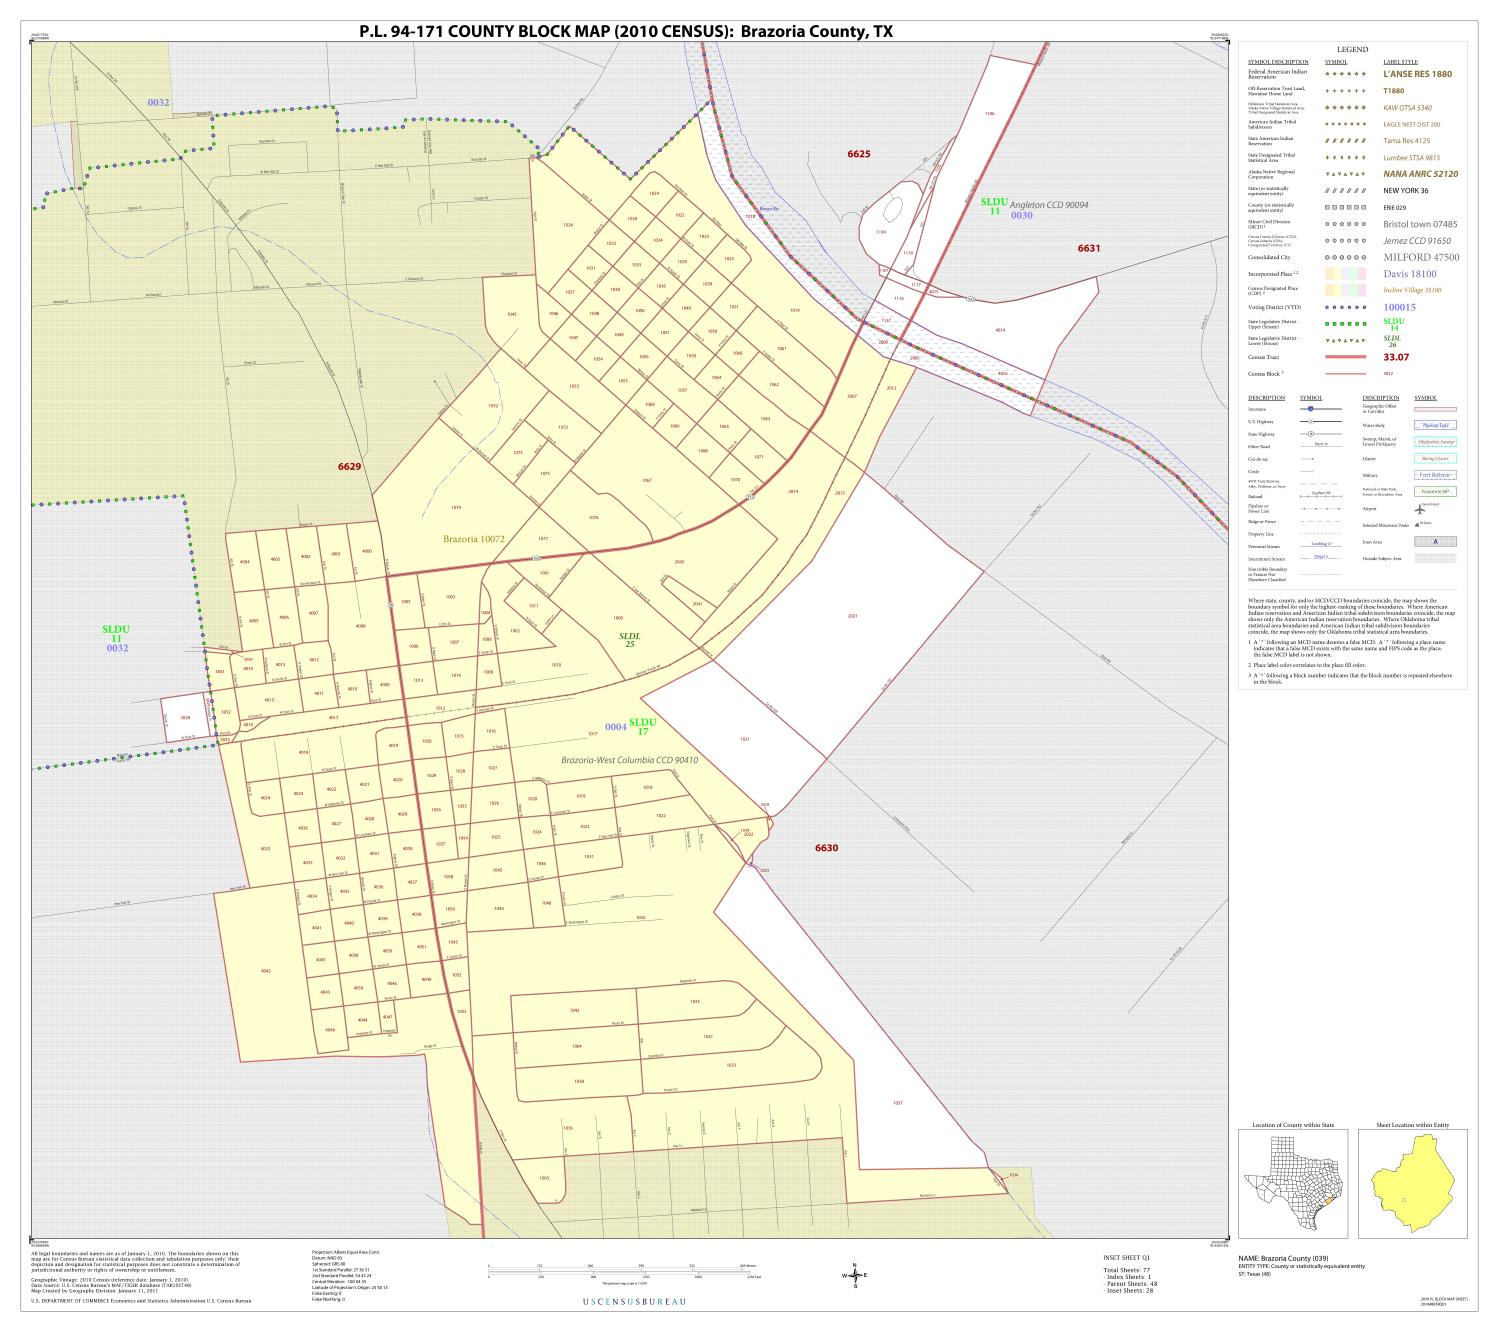 P.L. 94-171 County Block Map (2010 Census): Brazoria County, Inset Q01                                                                                                      [Sequence #]: 1 of 1